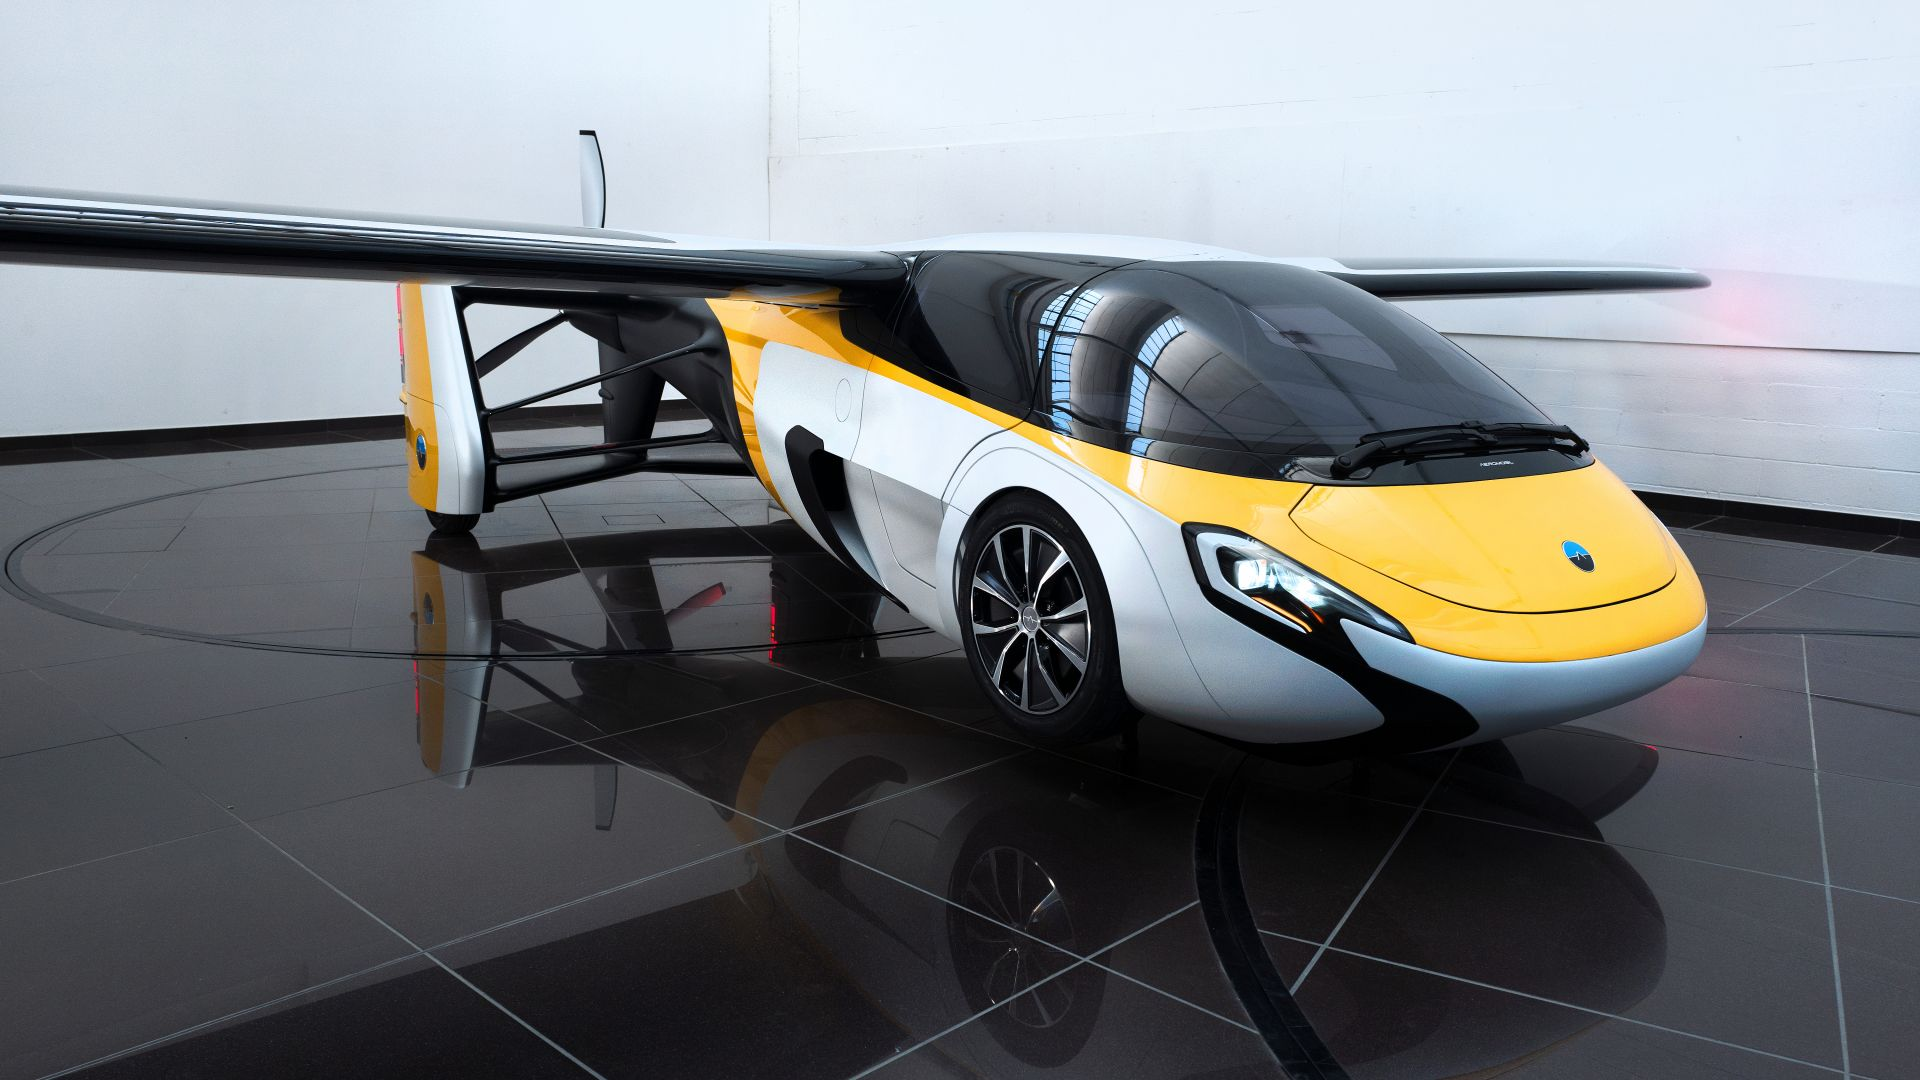 аэромобиль, концепт, тест драйв, AeroMobil 3.0, concept, aircraft, flying car, runway, front, test drive (horizontal)